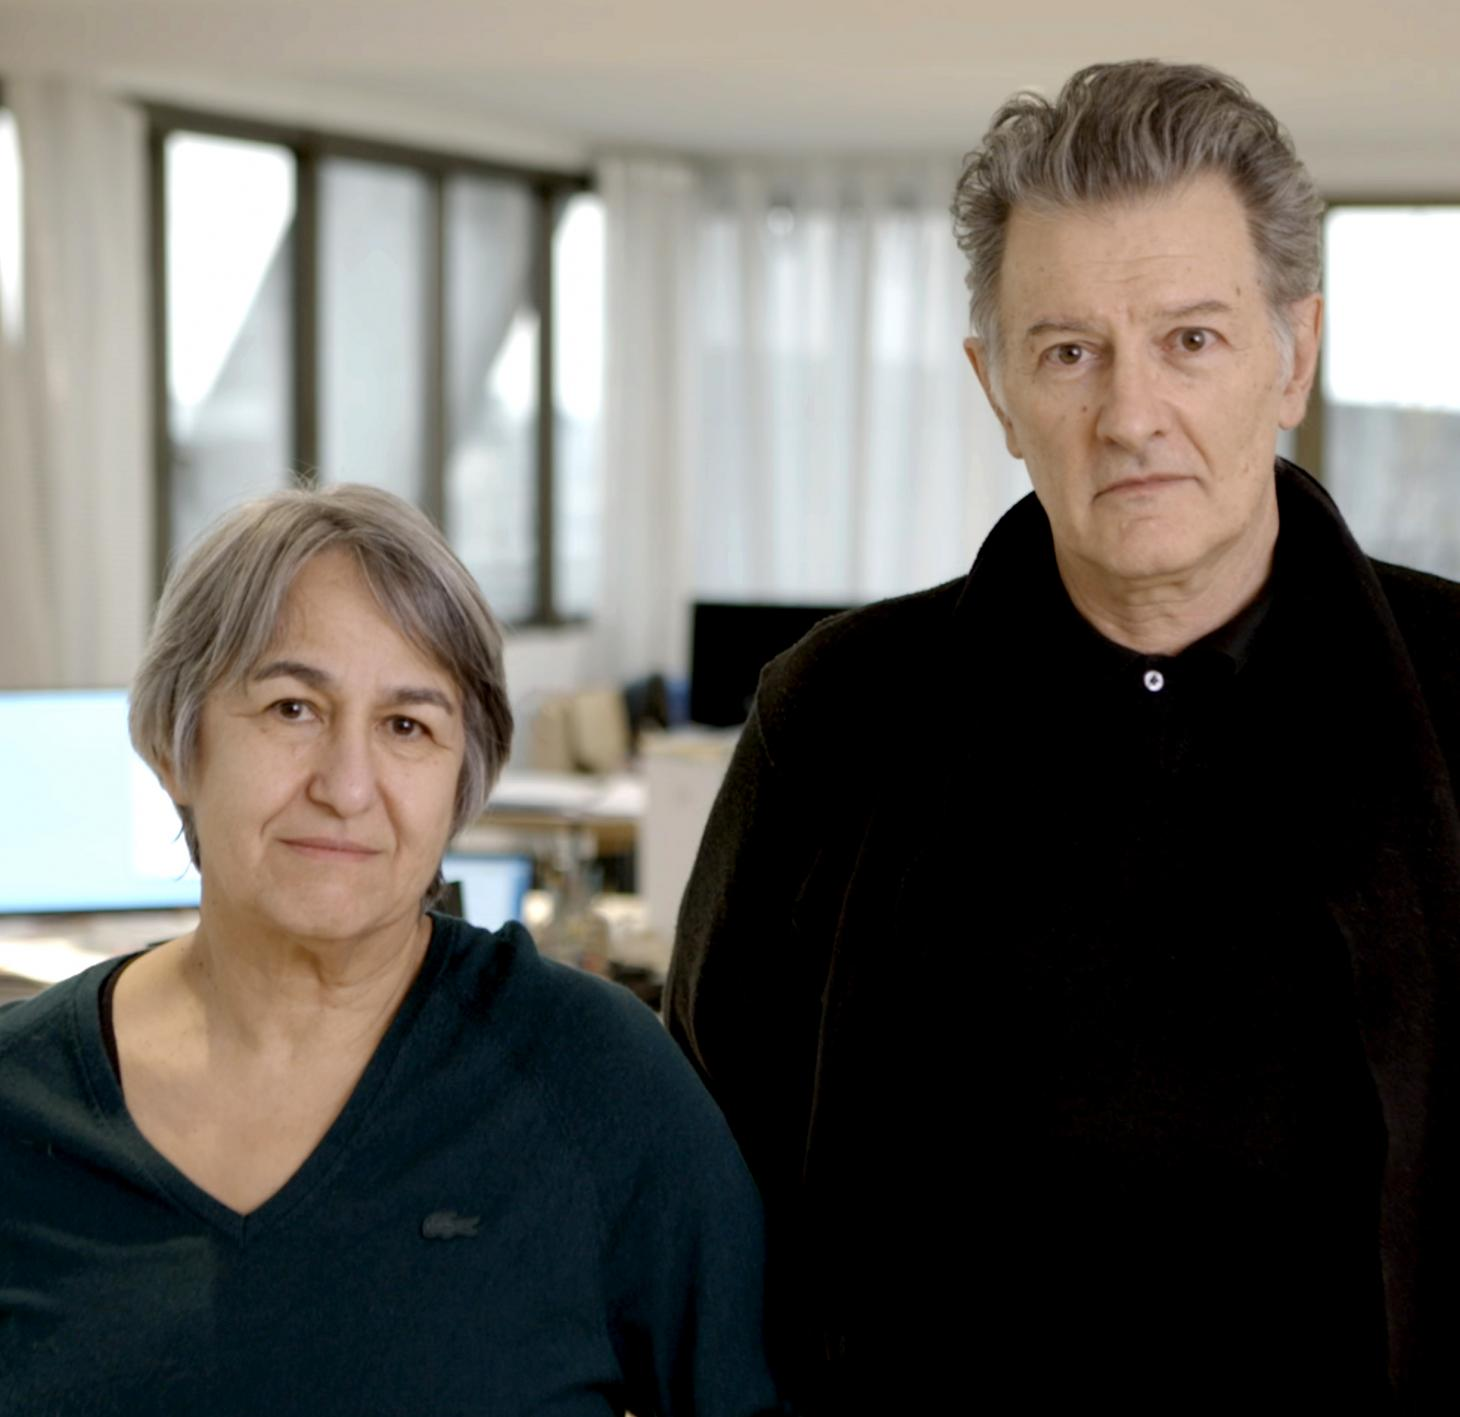 Anne Lacaton and Jean-Philippe Vassal winners of the Pritzker Price for Architecture 2021